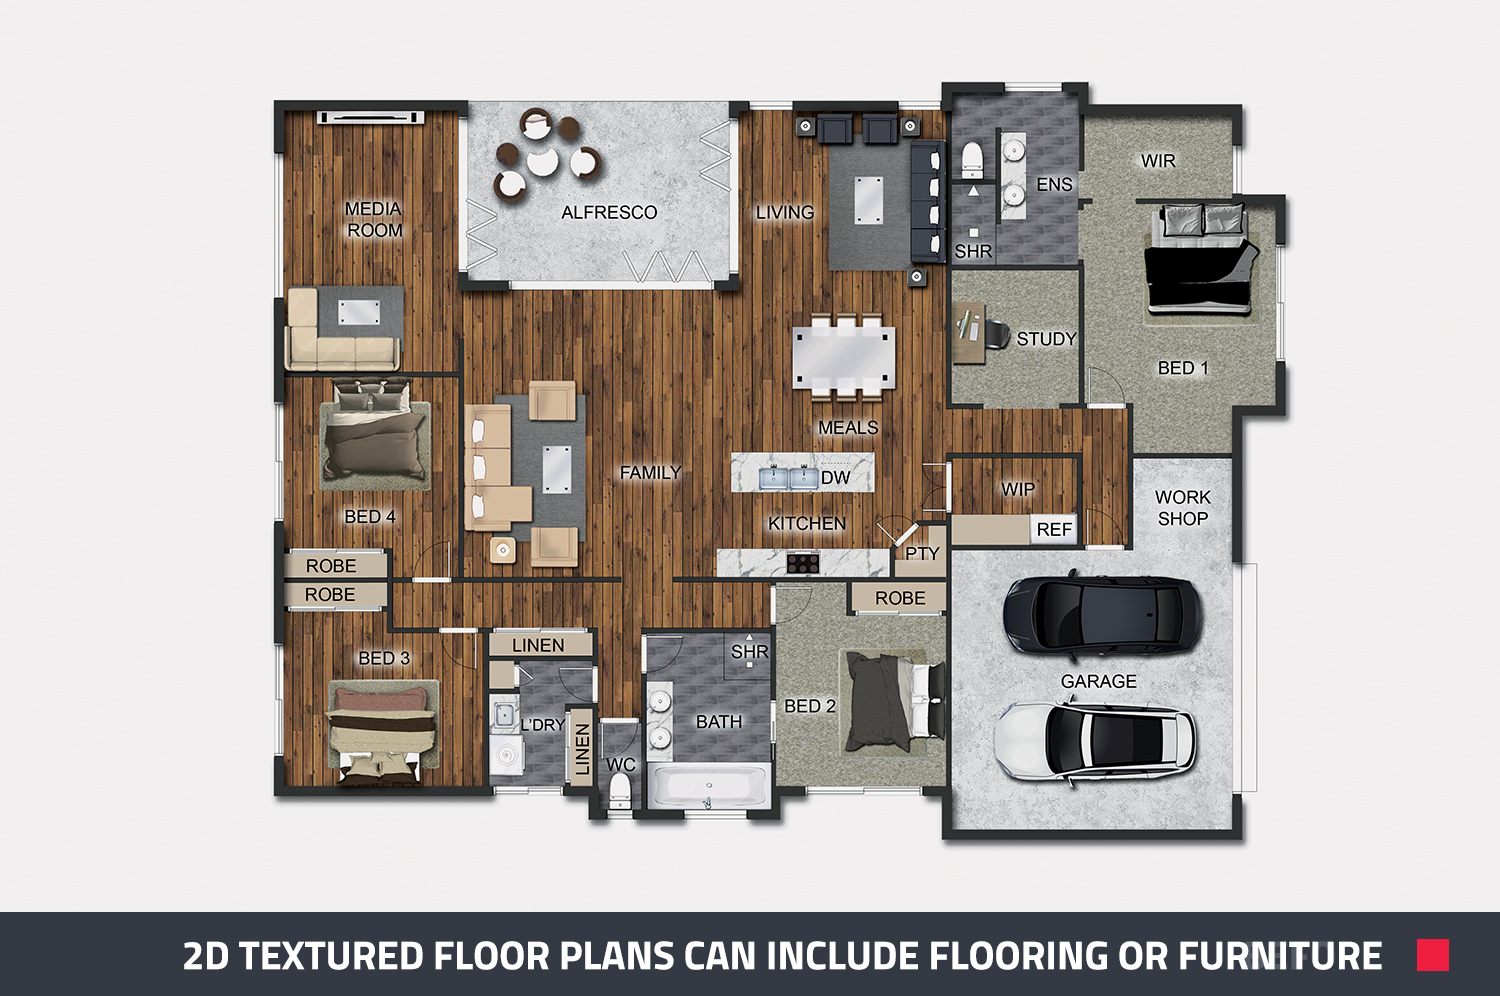 2d textured floor plan that includes flooring and furniture